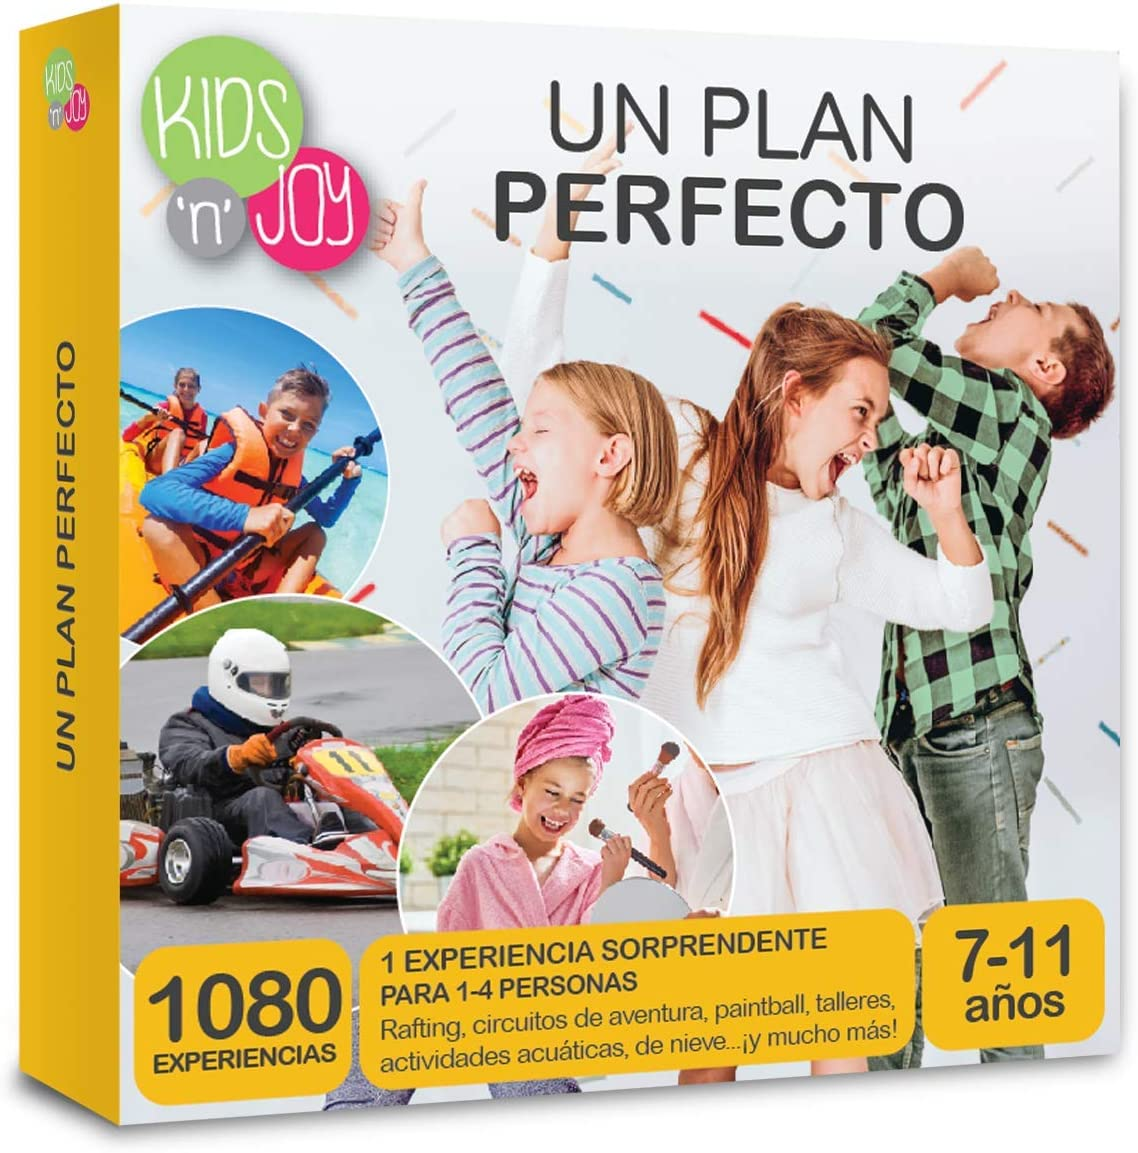 kids n joy un plan perfecto